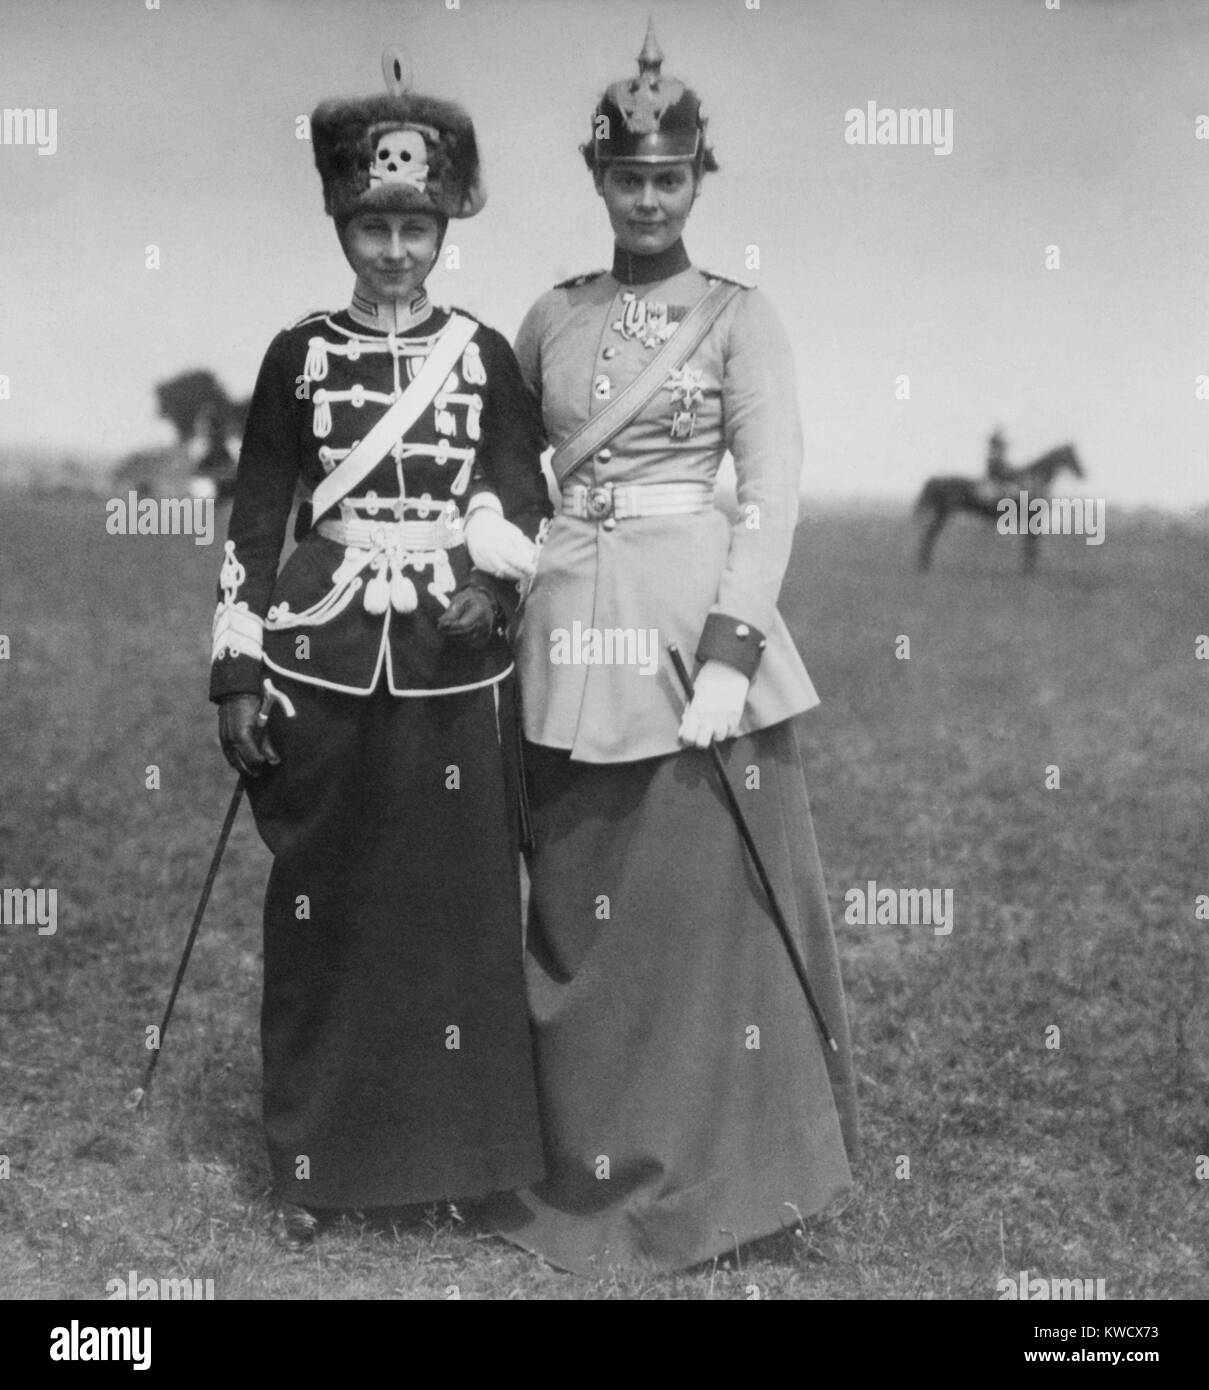 Princess Victoria Louise (left) and Crown Princess Cecilie of Germany, Oct. 7, 1914. They are dressed in uniforms - Stock Image